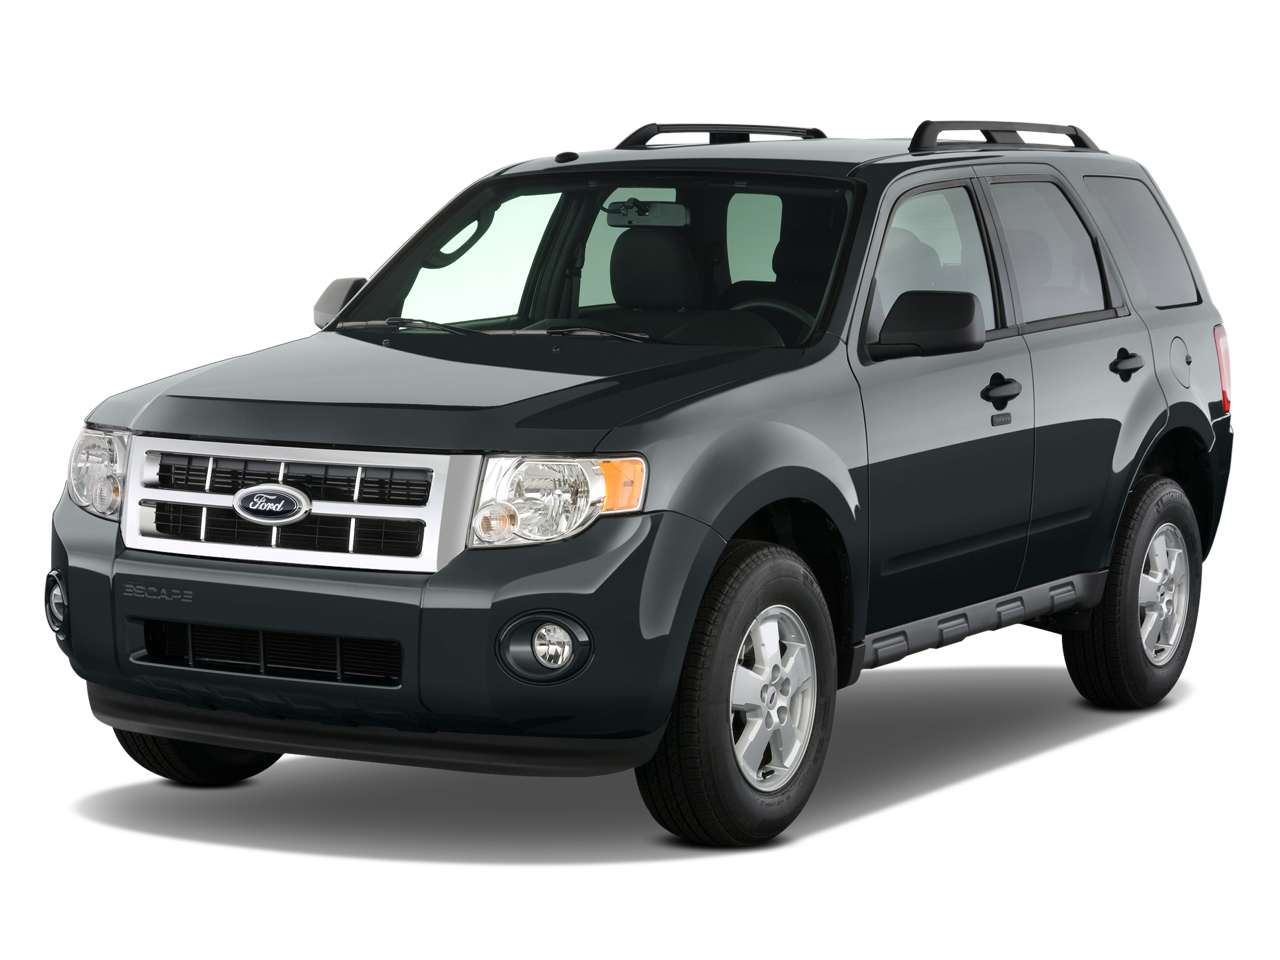 Ford escape for sale in temple hills md